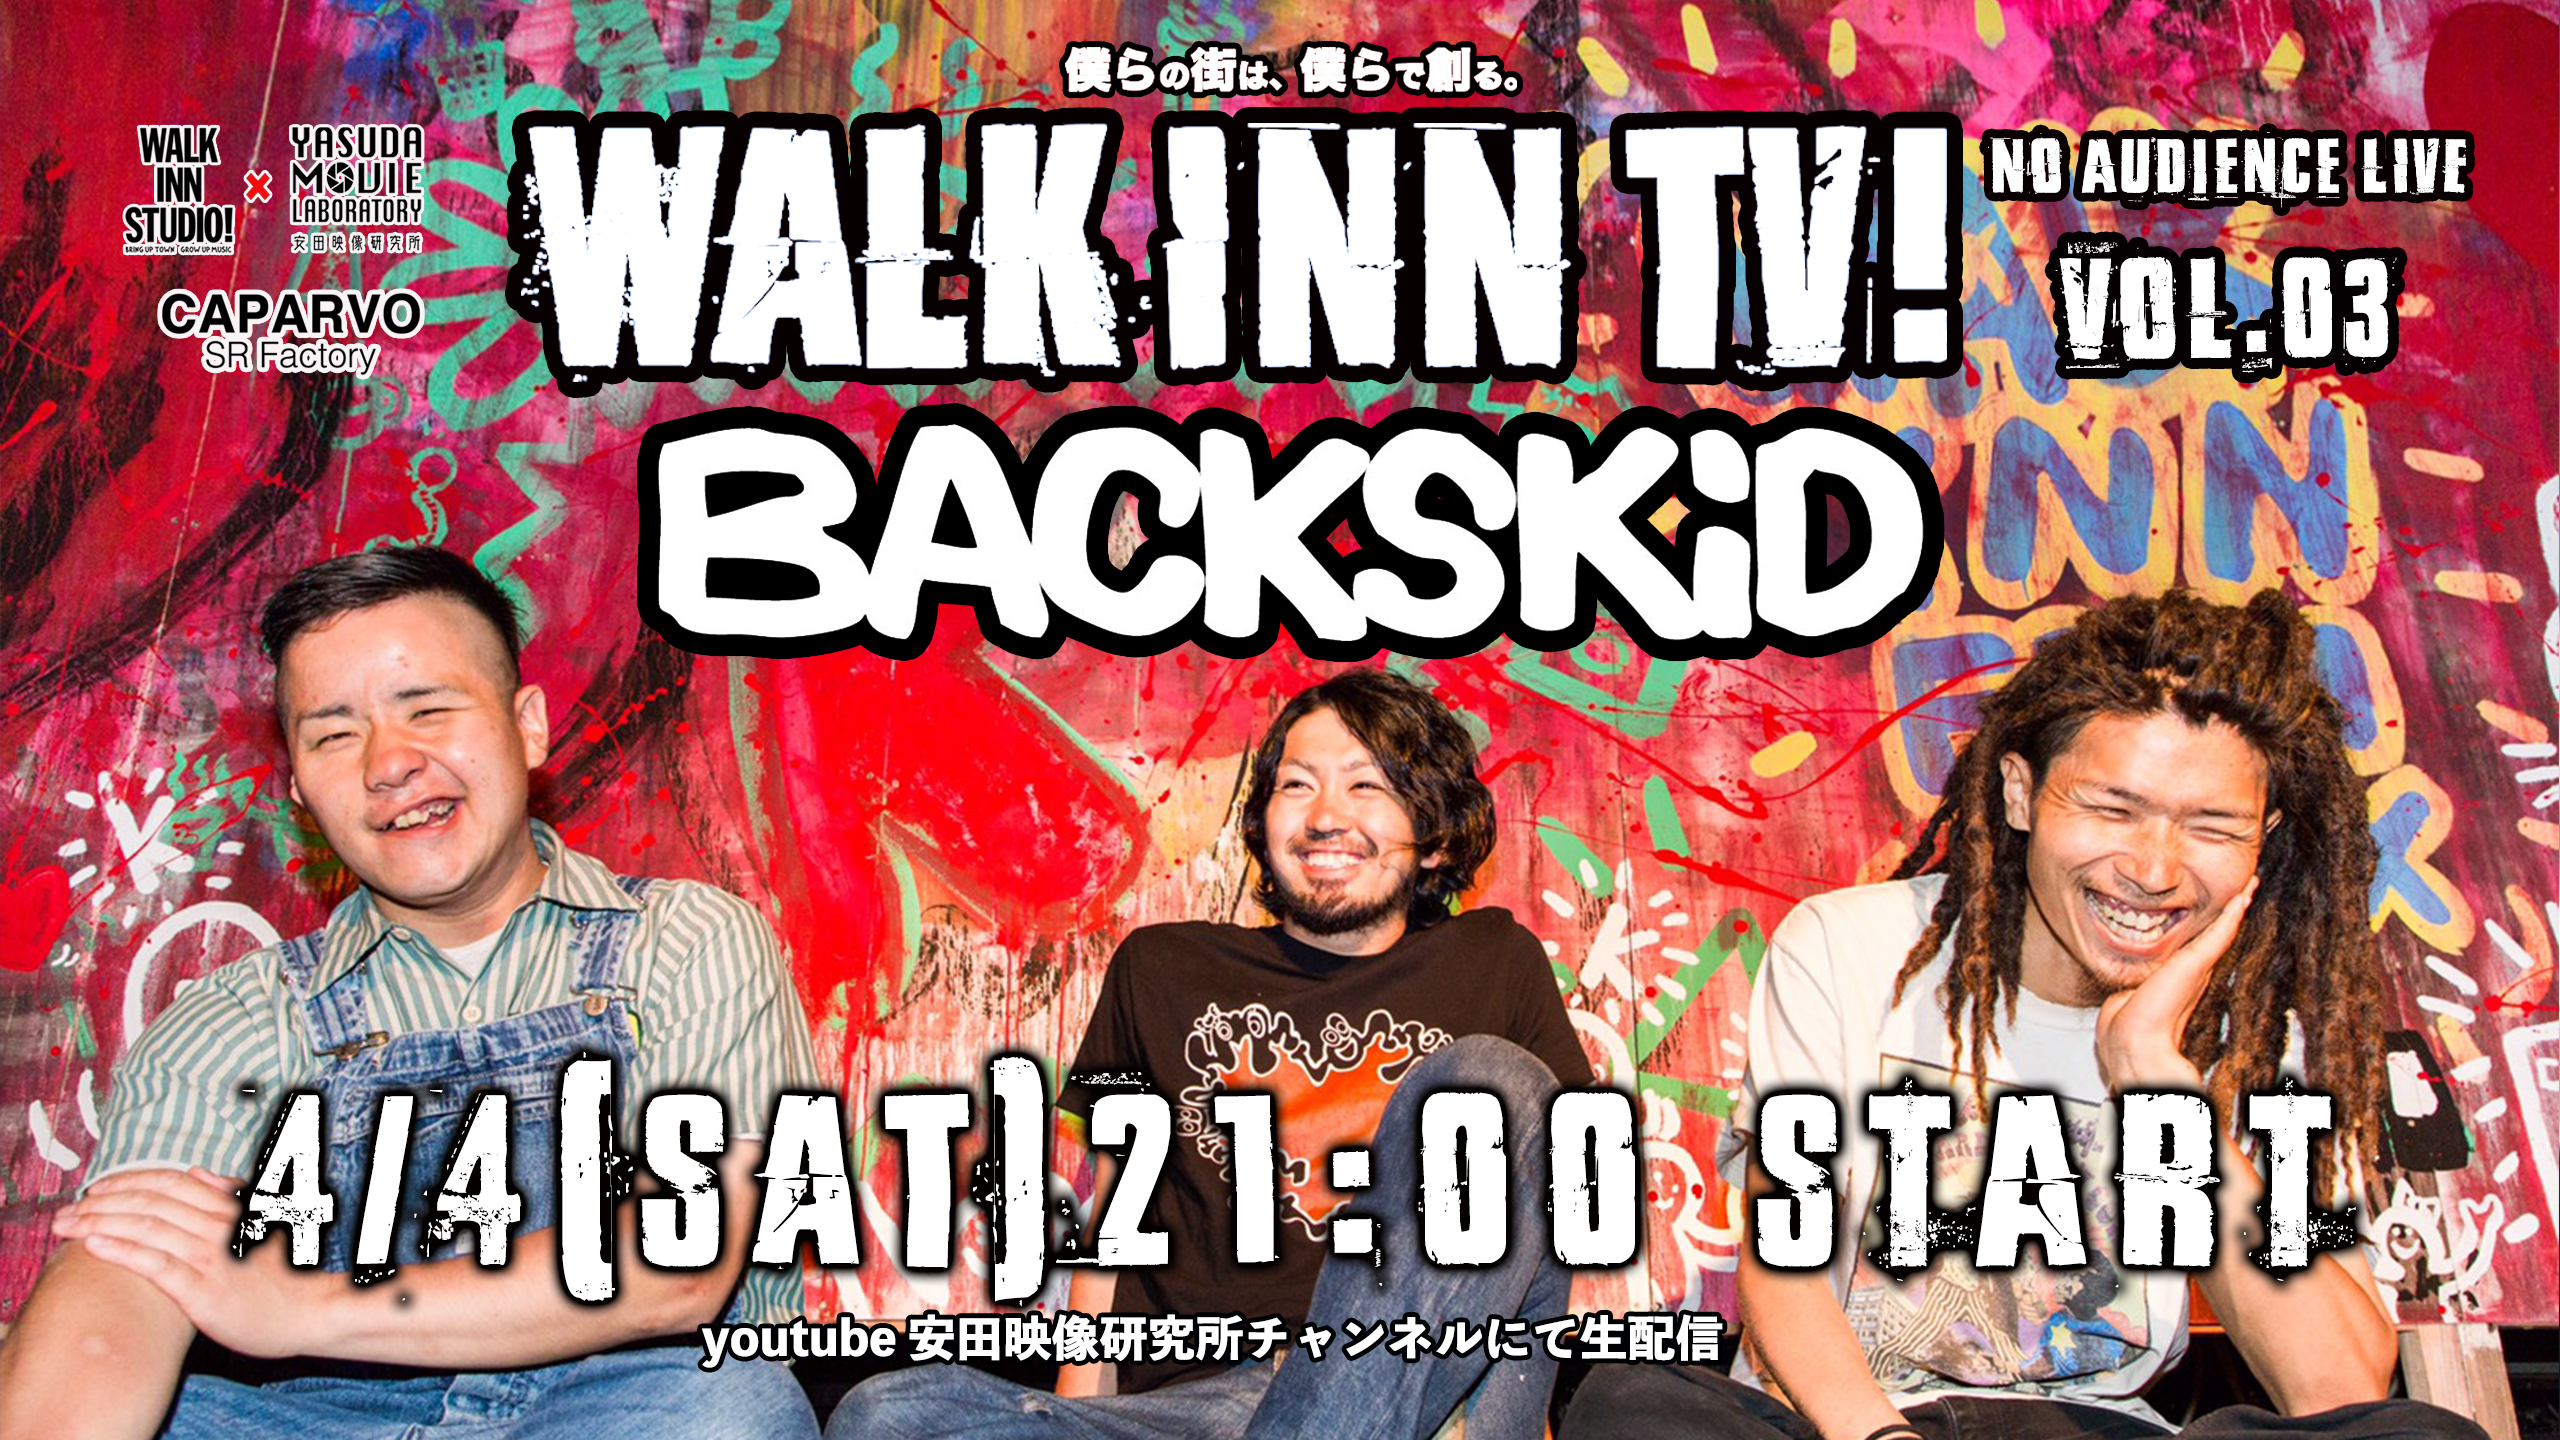 vol.03 BACKSKiD